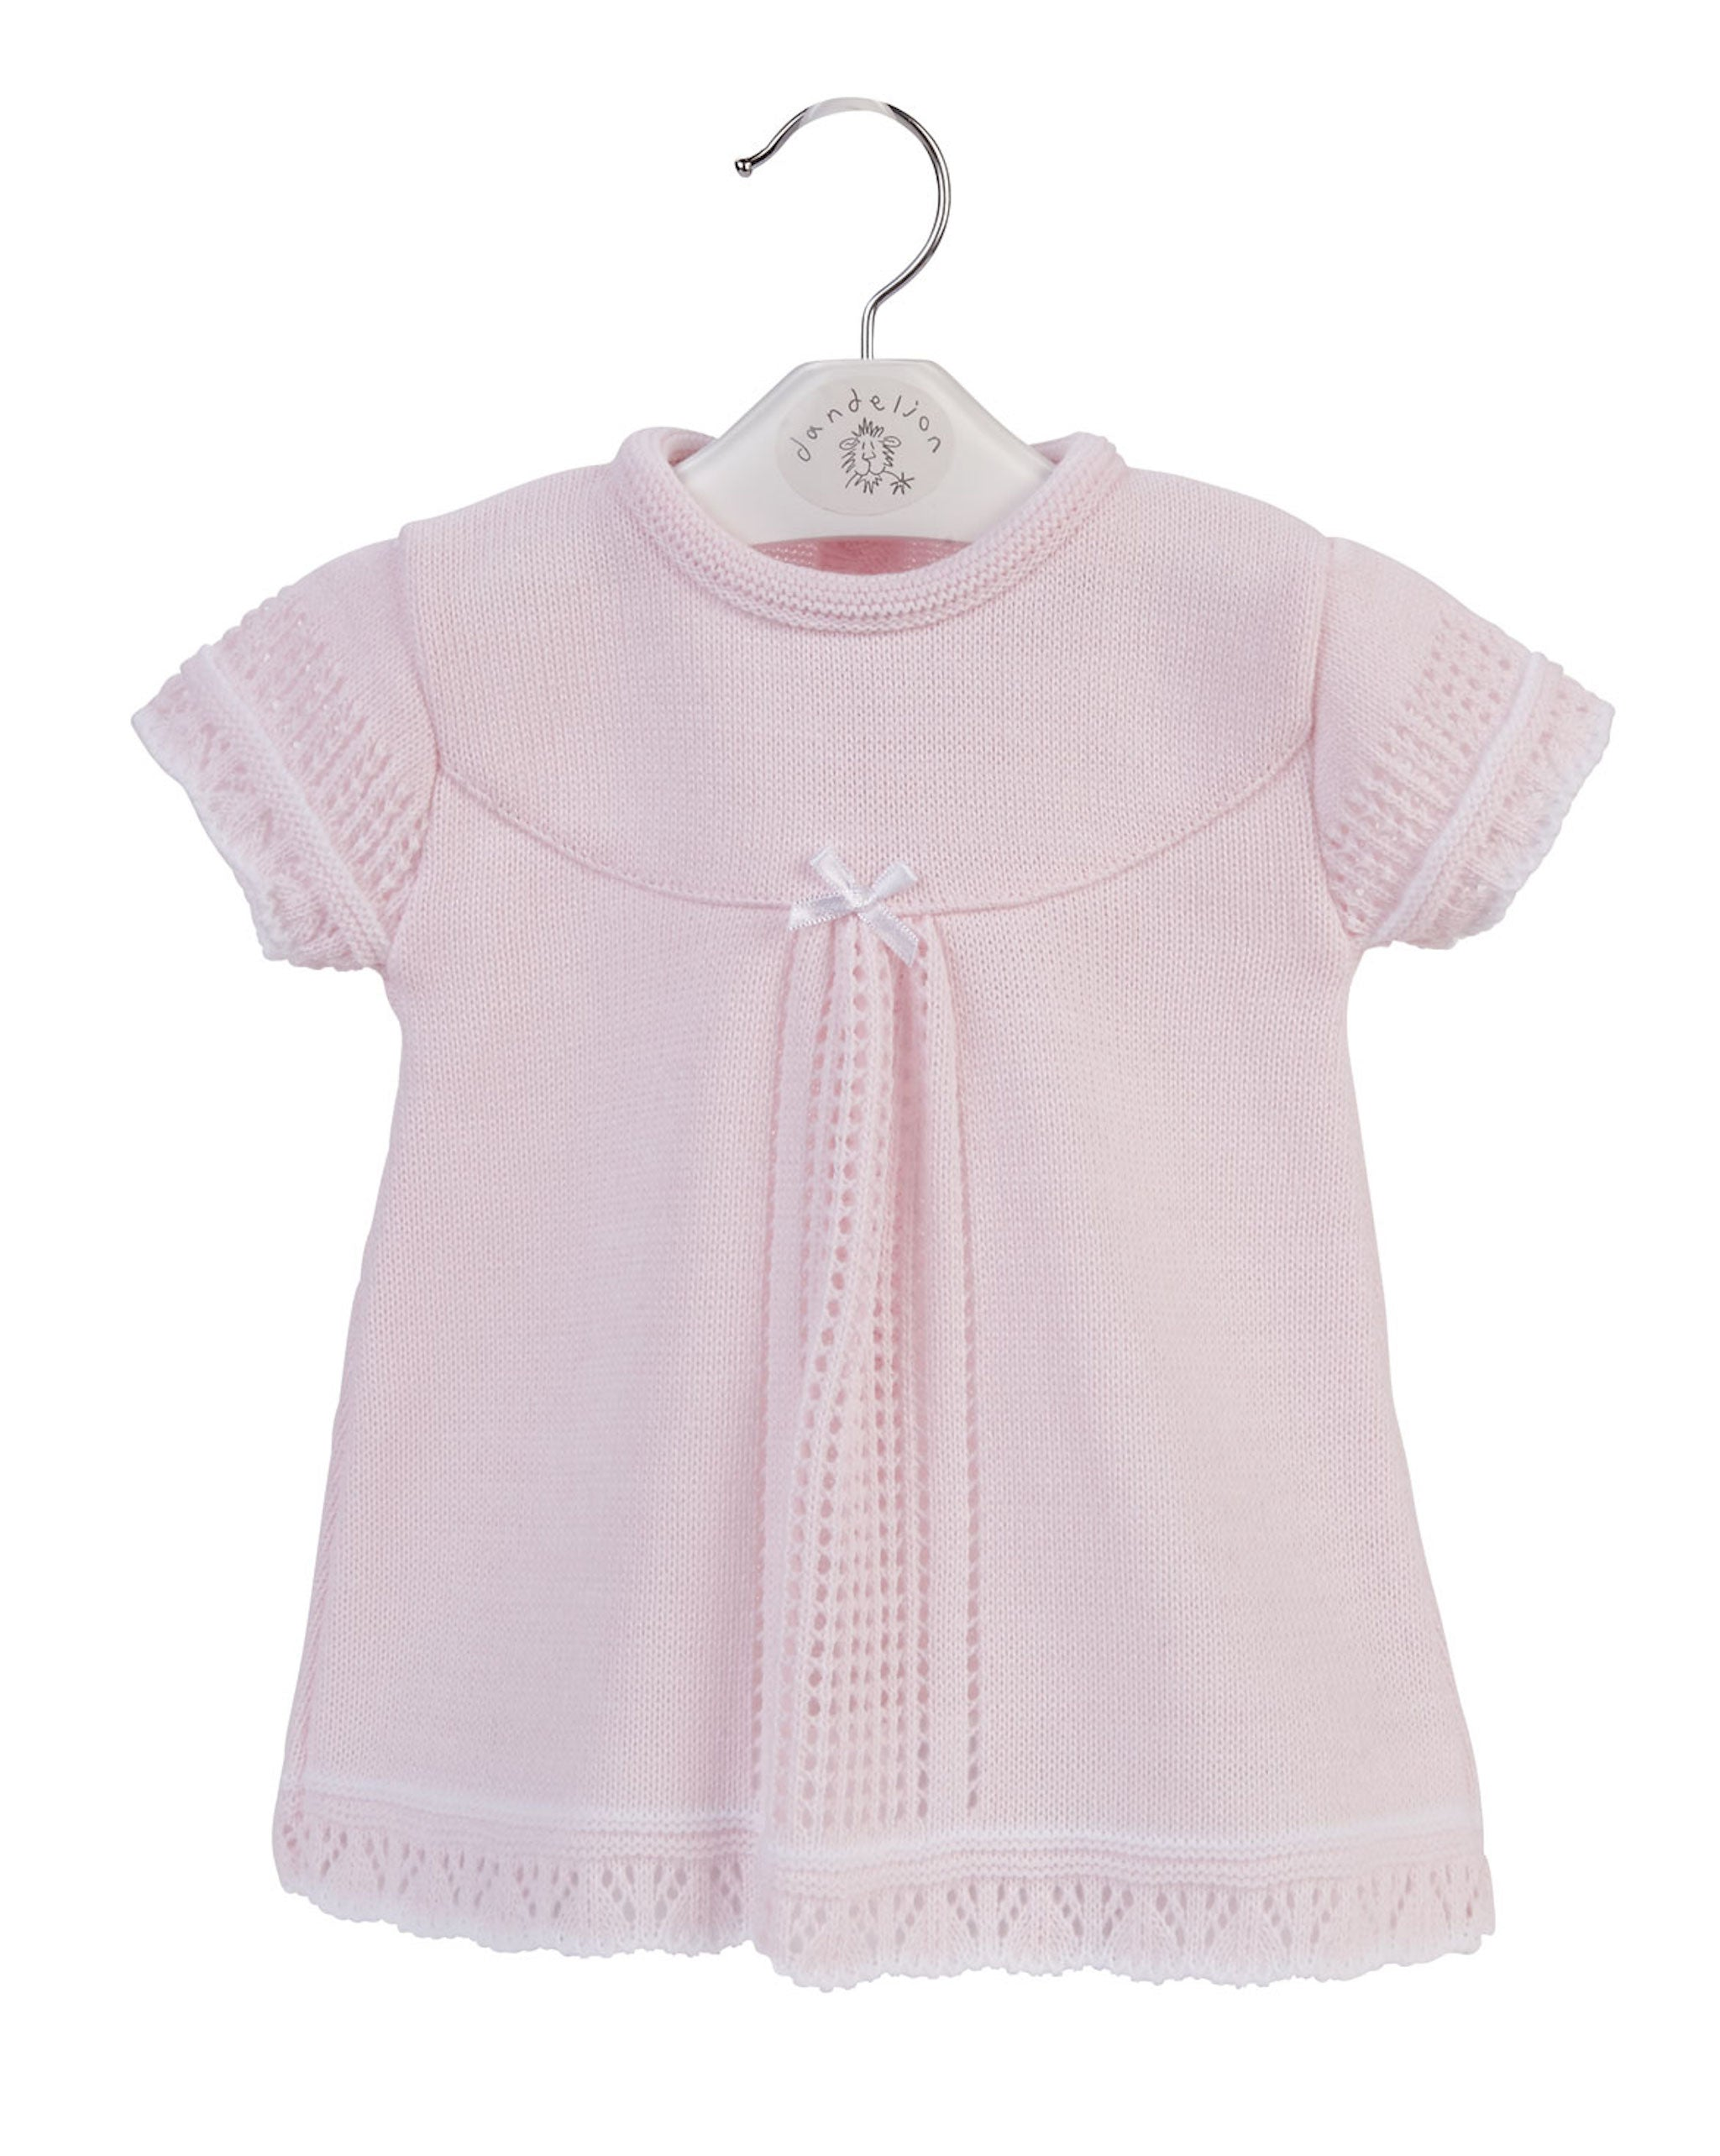 2f9889faeaca ... baby pink dress, knitted baby wear, baby girl knitted dress, infant  girl clothing ...